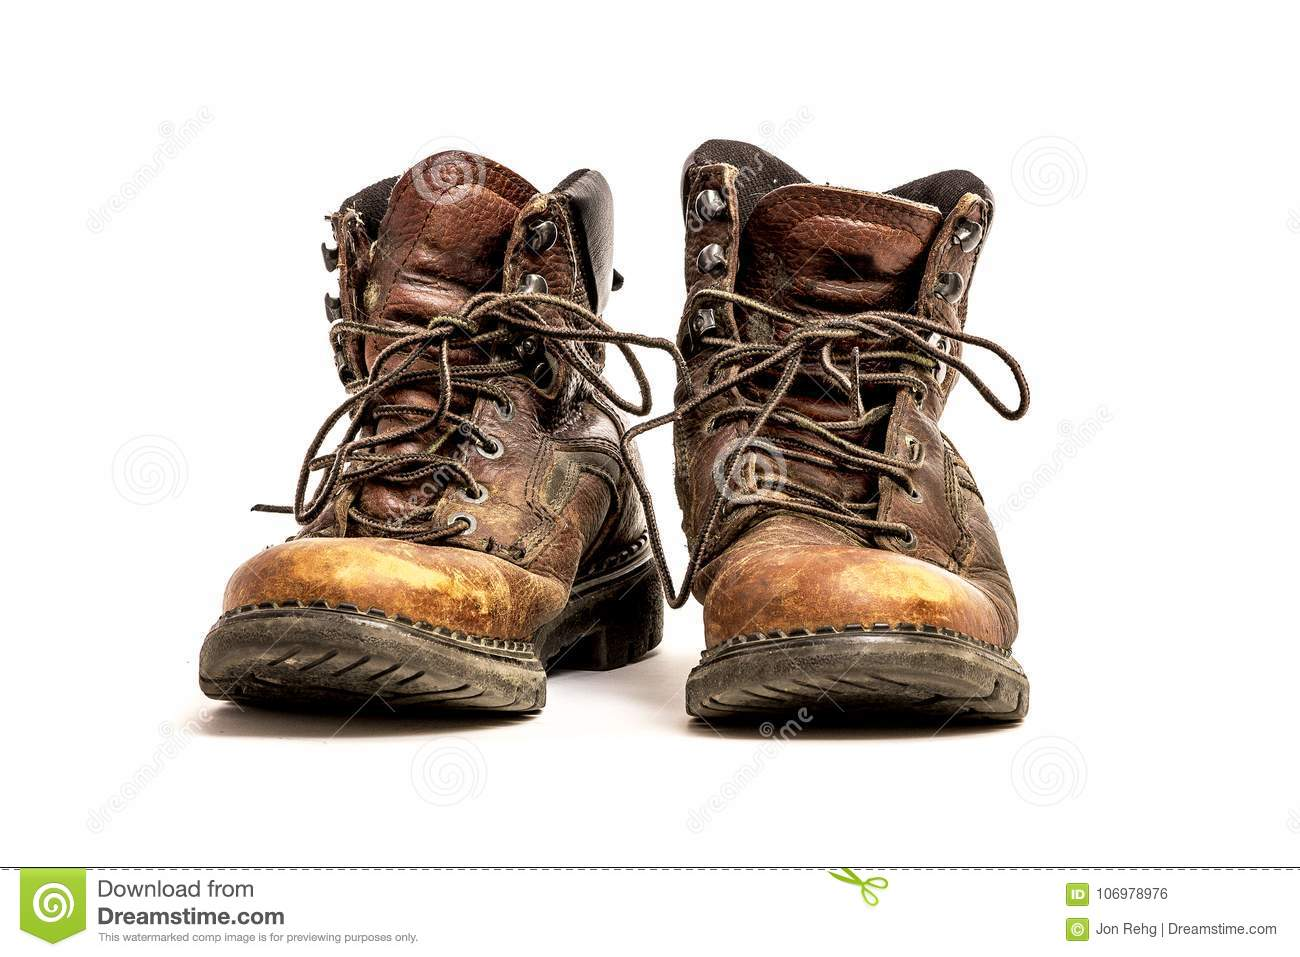 Pair of Men`s Dirty Beat Up Grungy Brown Leather Work Boots Isolated on White Background